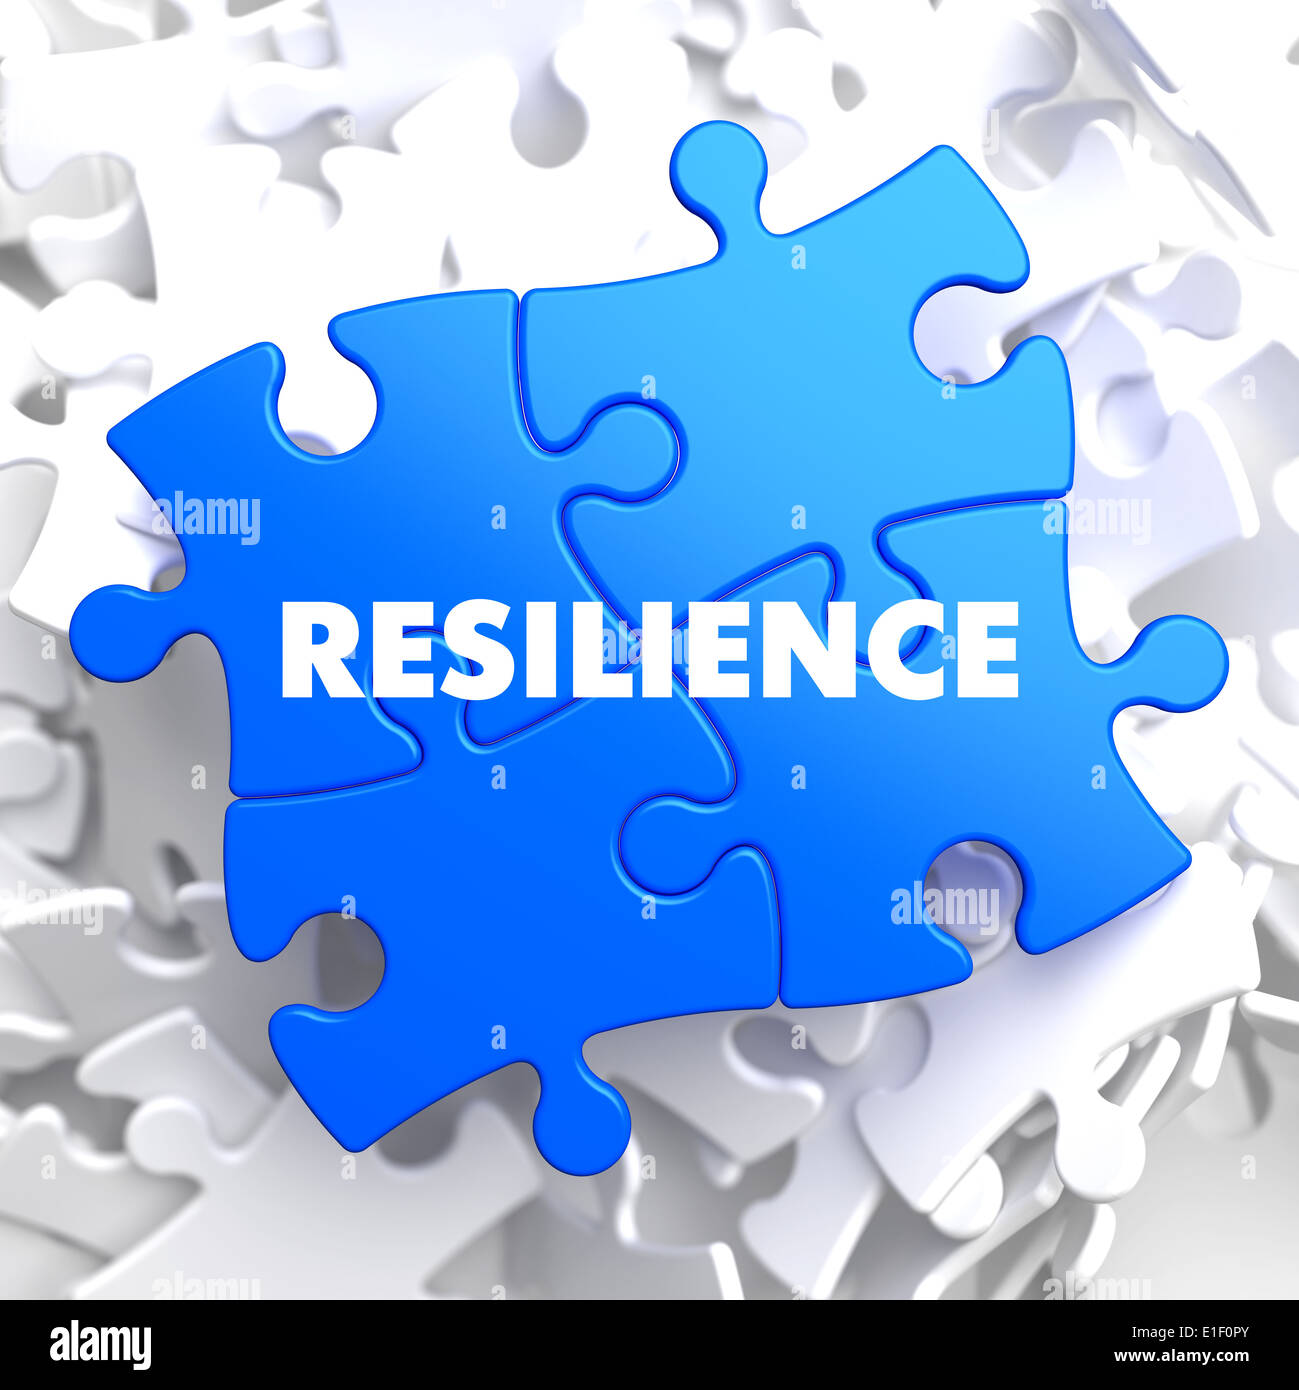 Resilience on Blue Puzzle on White Background. - Stock Image